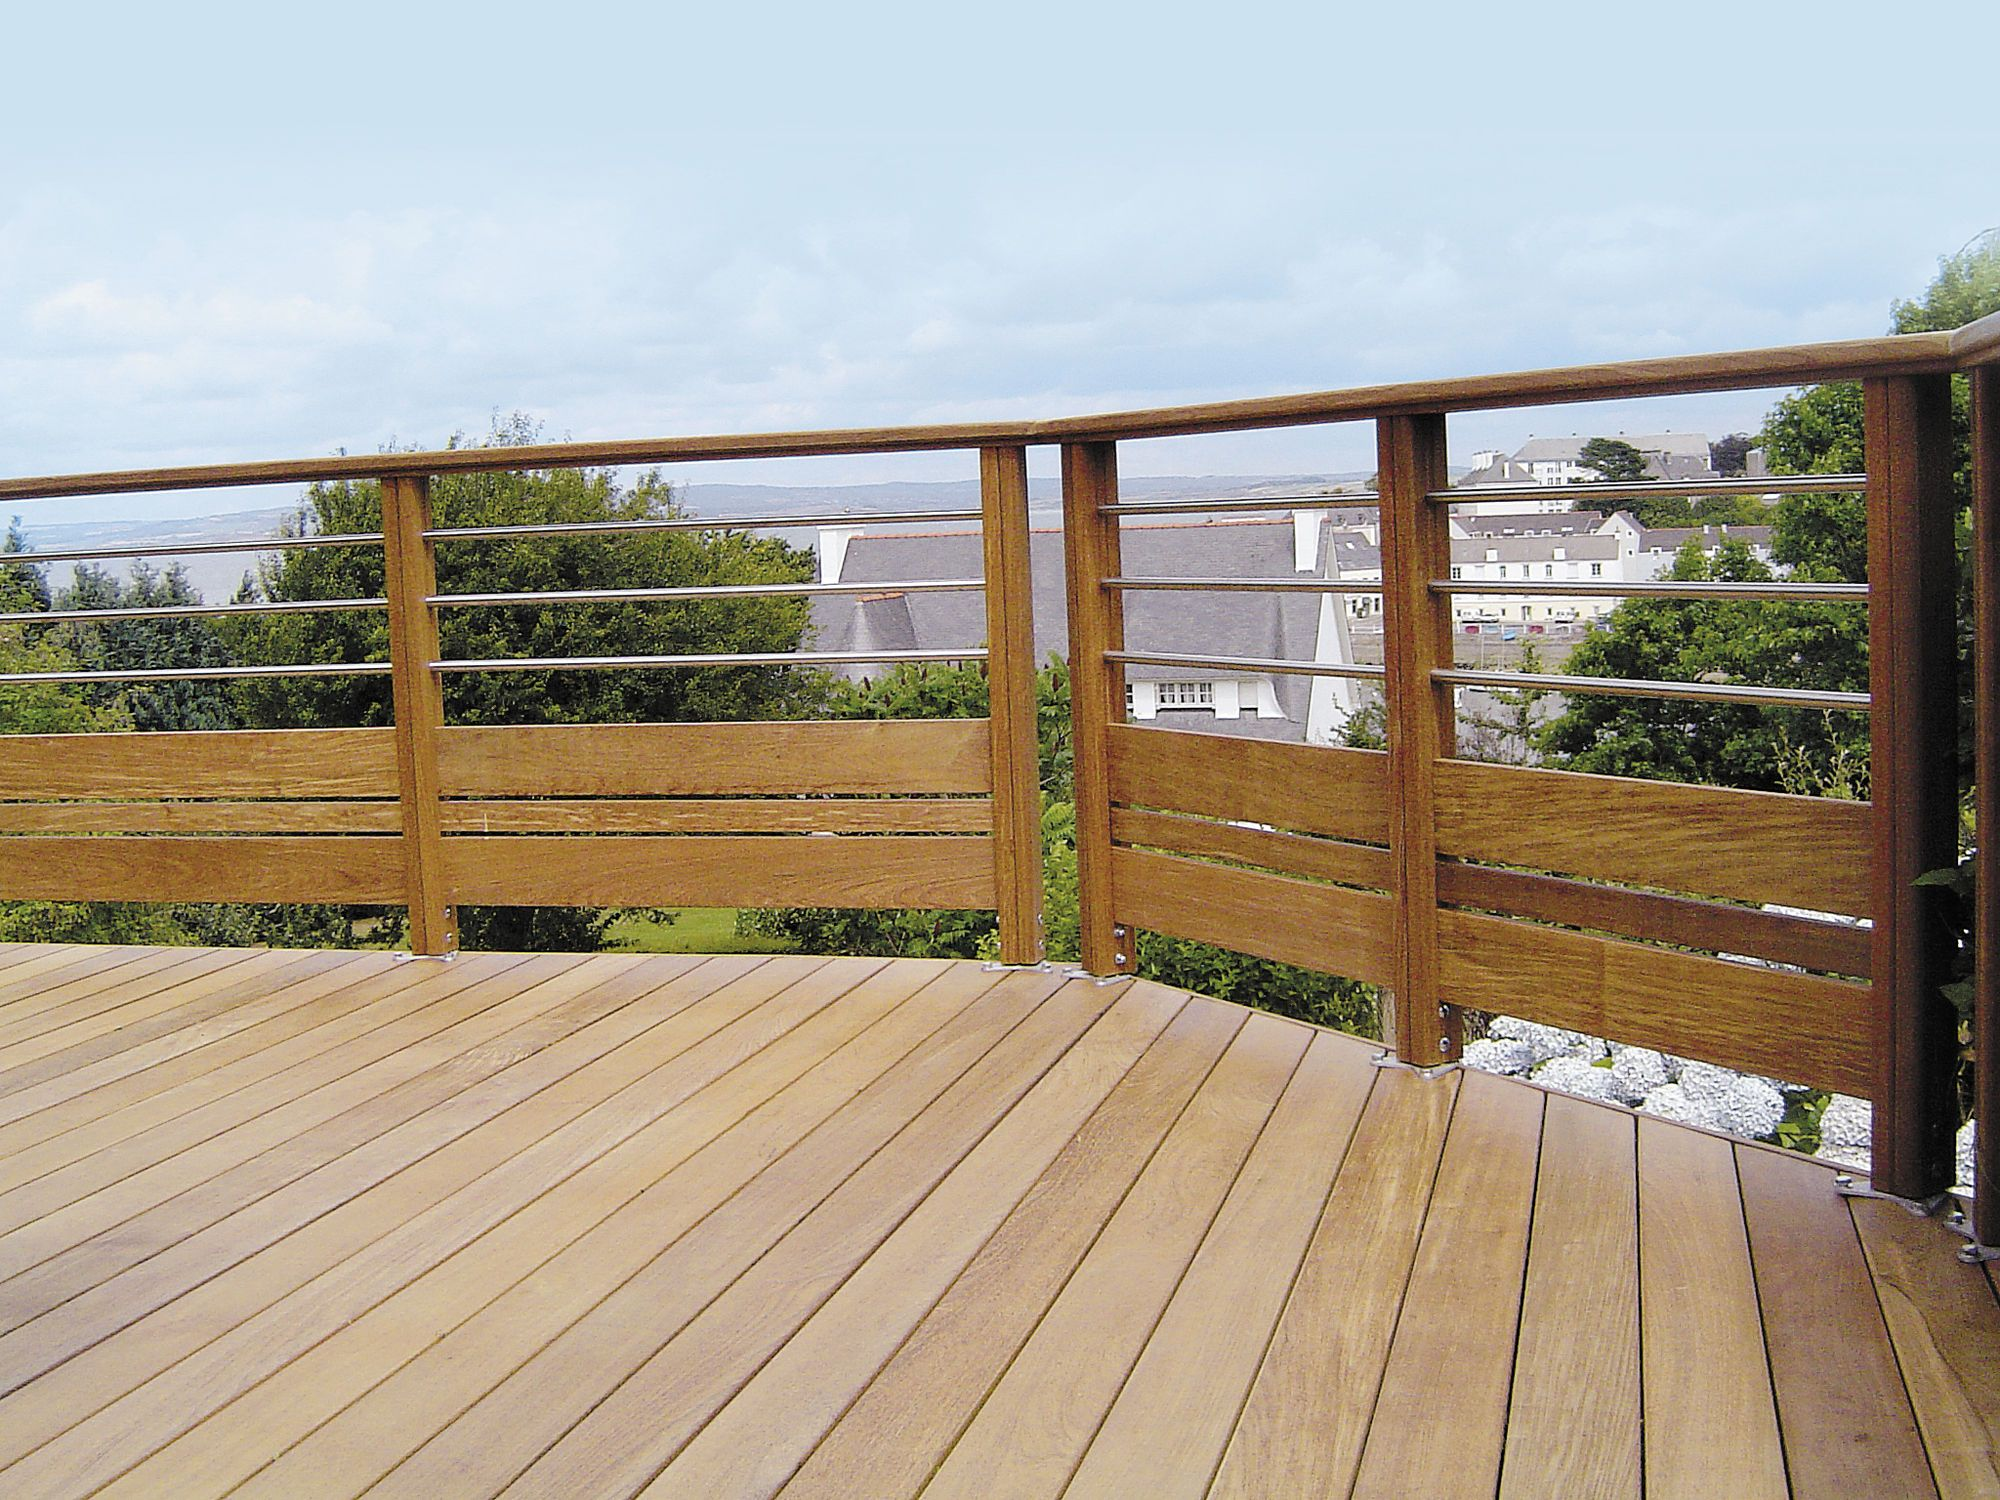 Terrasse Holz Wood Lower With Metal Upper Railing Cavage Holzgeländer